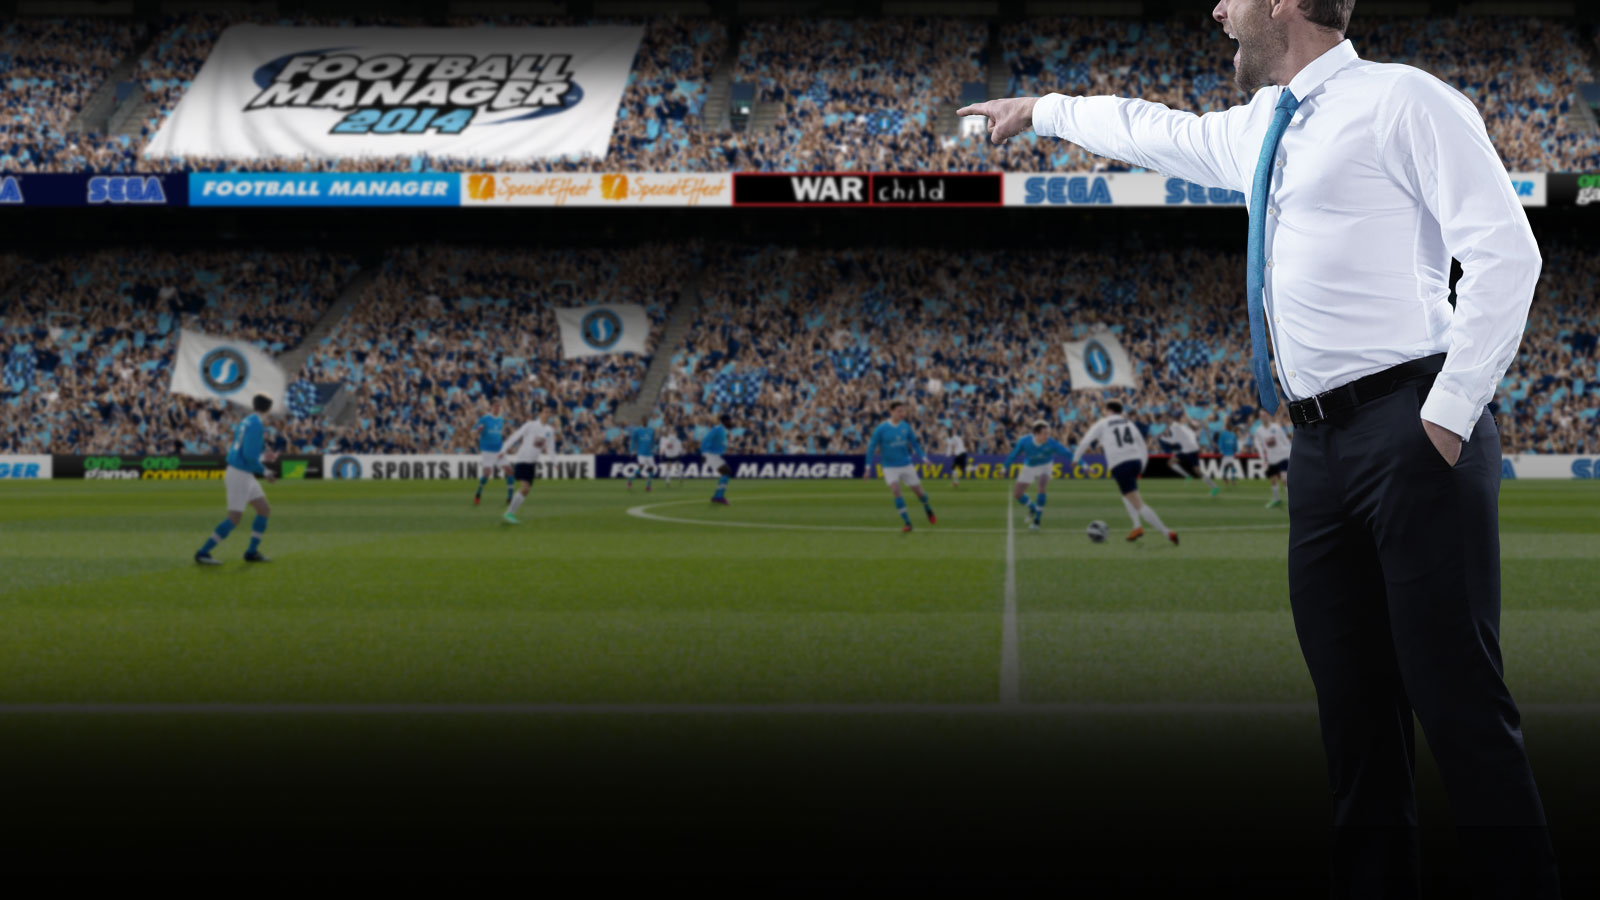 Football Manager 2015 confirmado: sale en noviembre